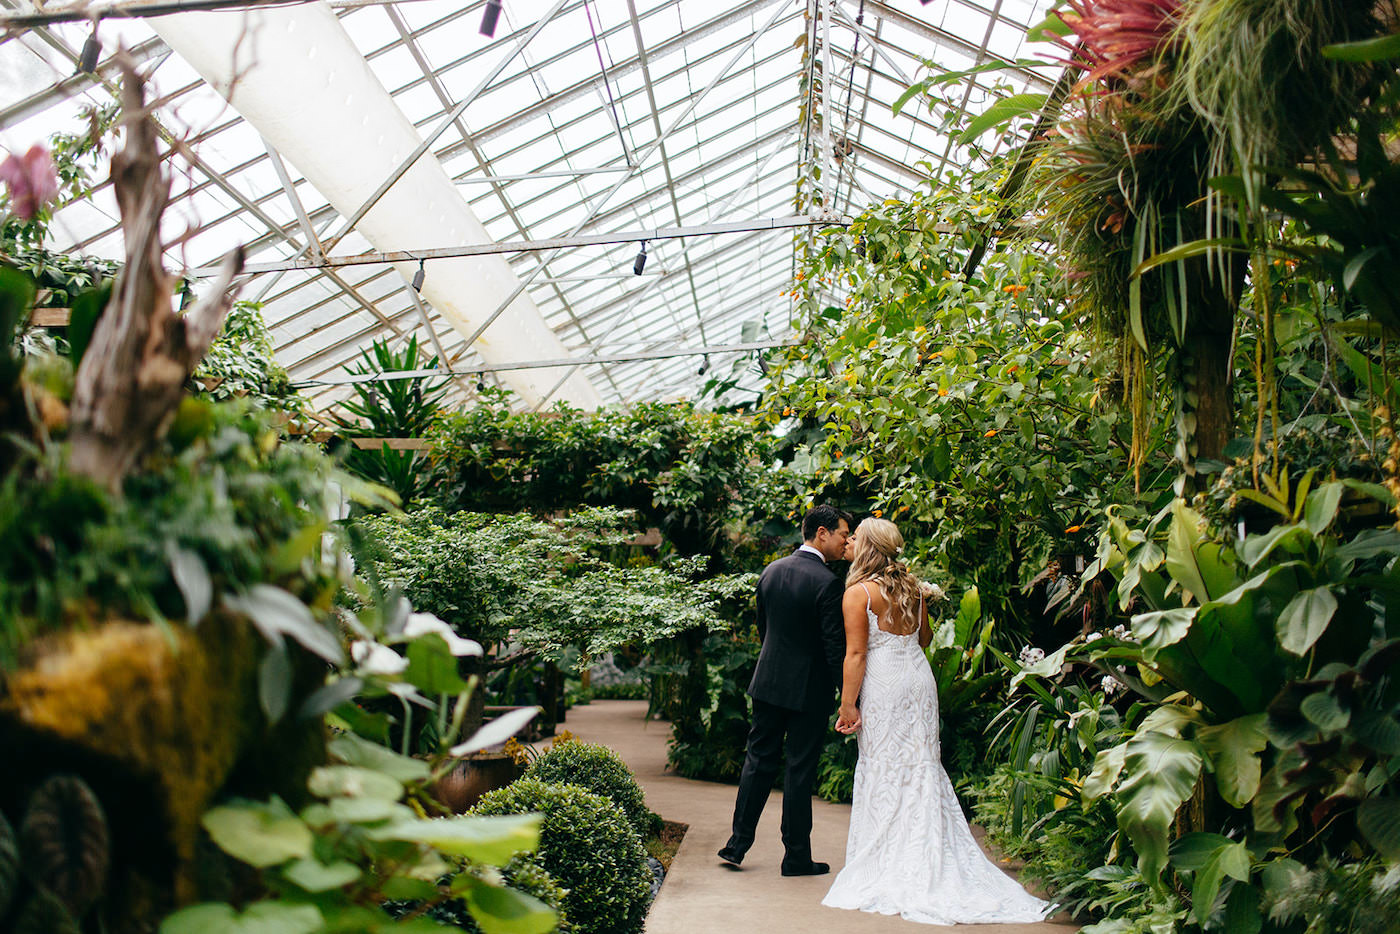 Florida Bride and Groom Intimate Embrace Kiss, Bride Wearing Romantic Hayley Paige Wedding Dress, Groom in Classic black Tux   Marie Selby Botanical Gardens